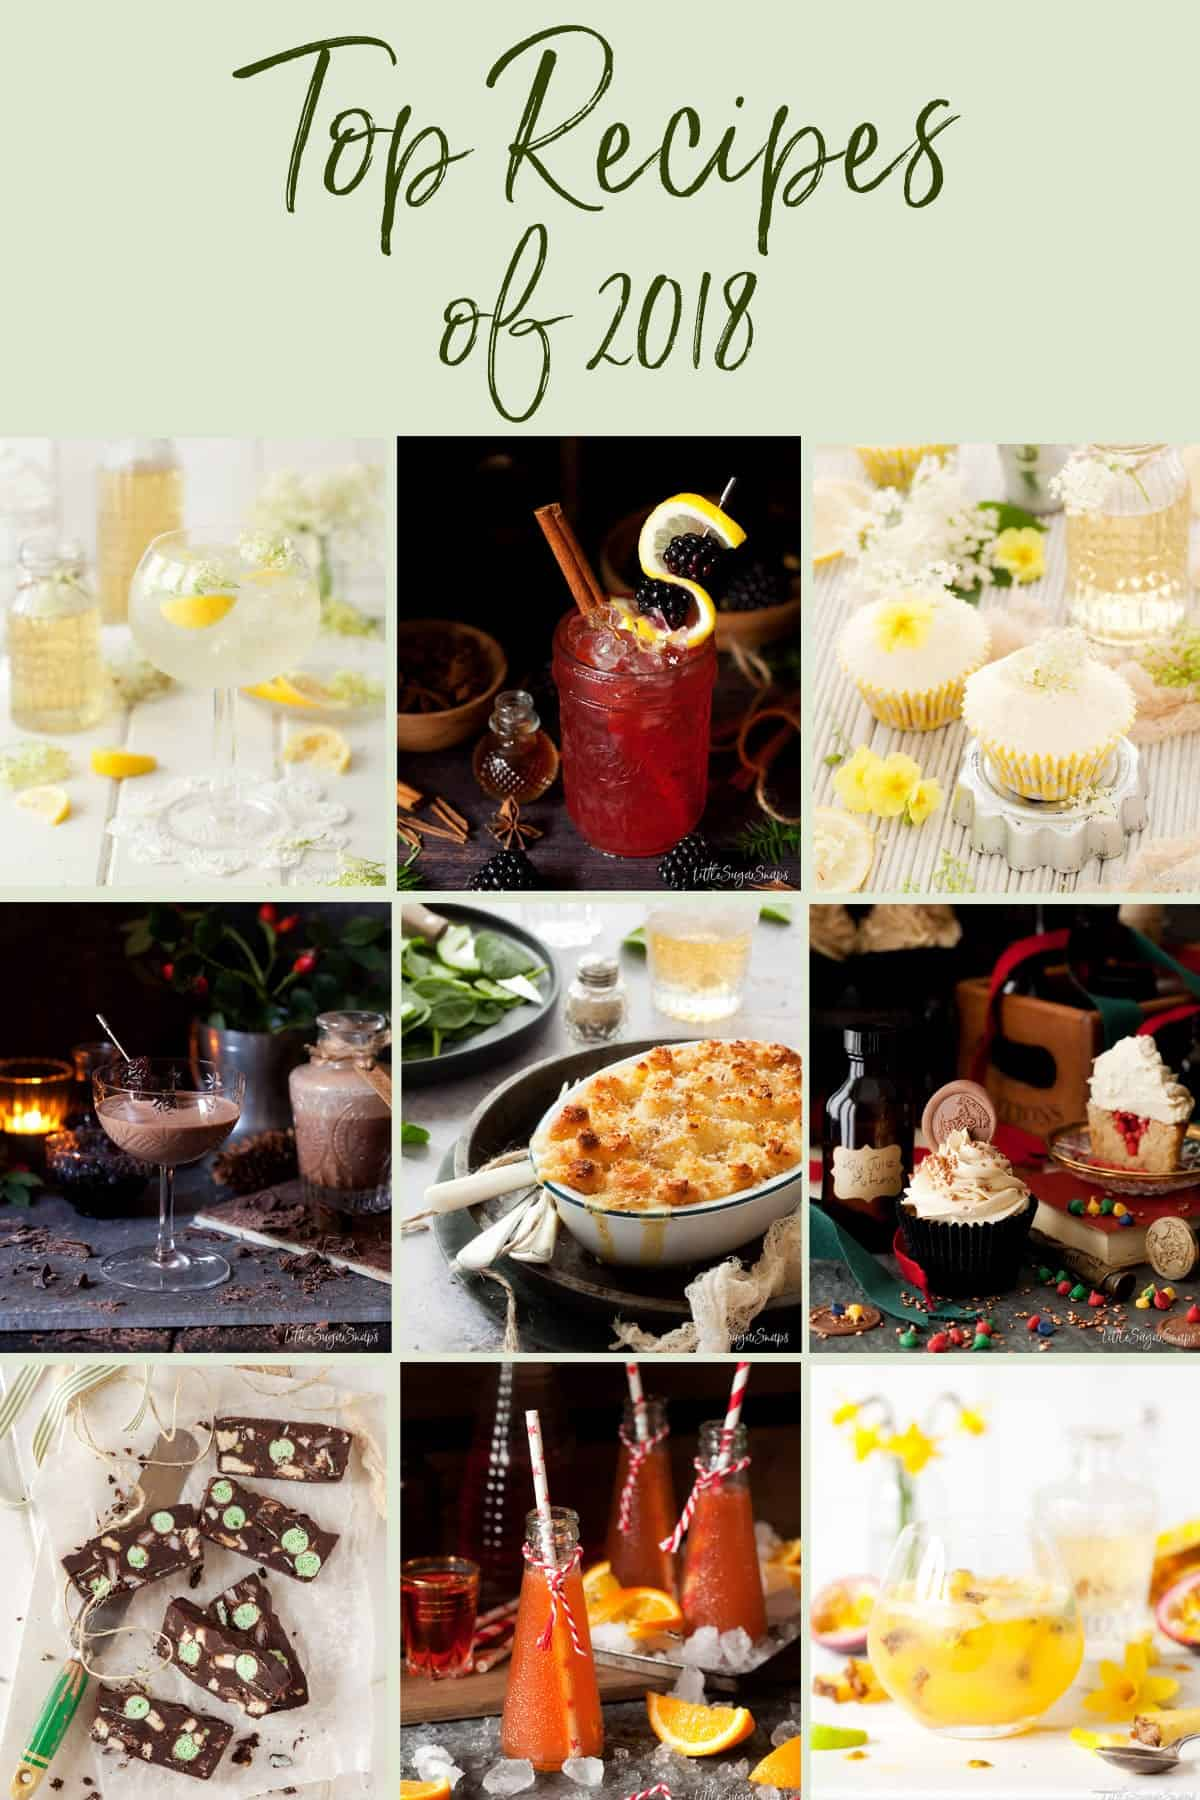 Top Recipes of 2018 - Littlesugarsnaps